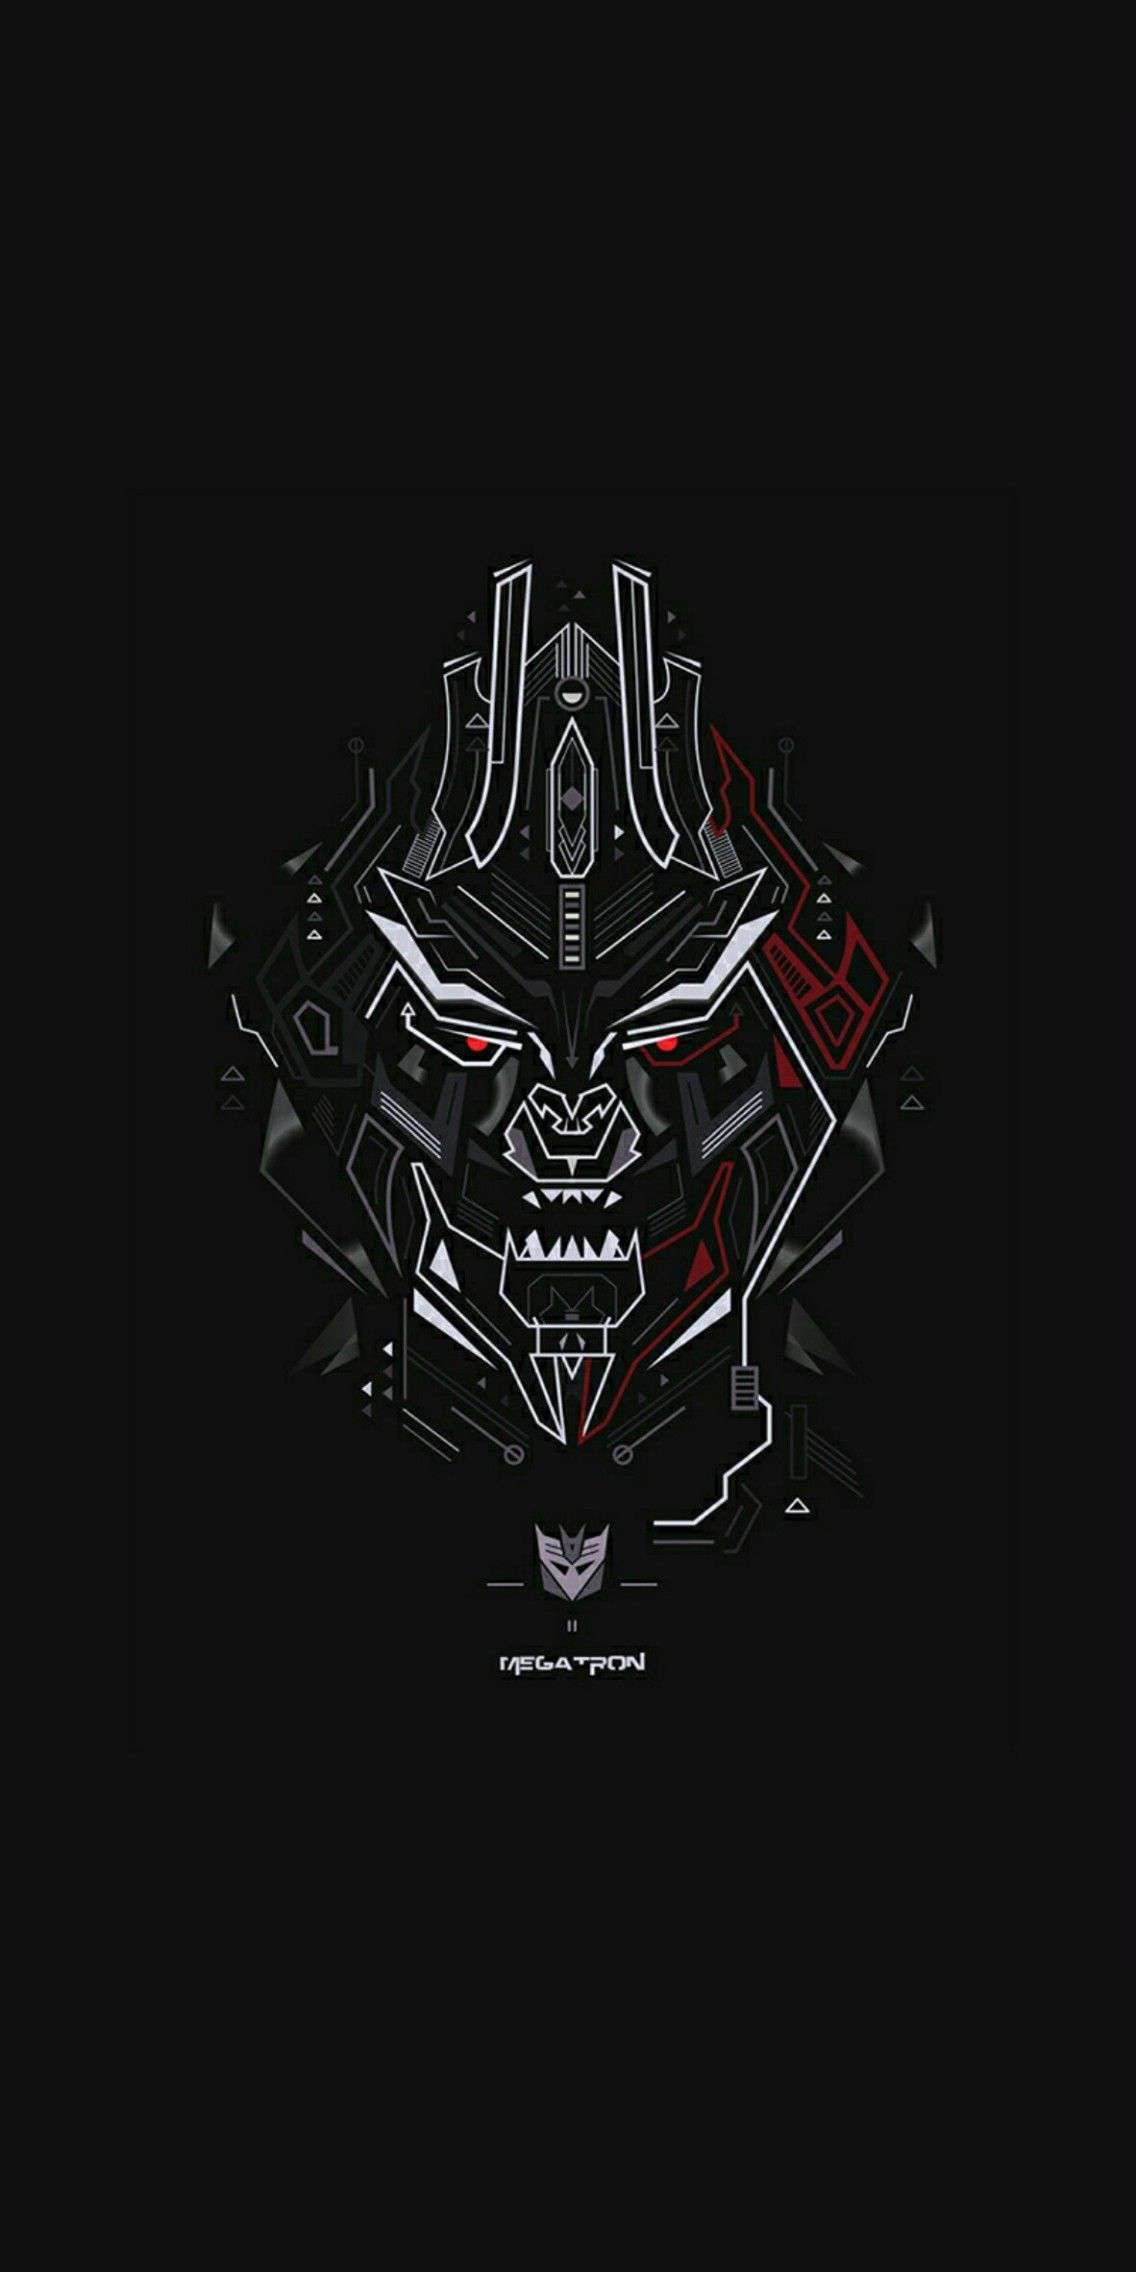 Megatron Iphone Wallpaper Graffiti Wallpaper Oneplus Wallpapers